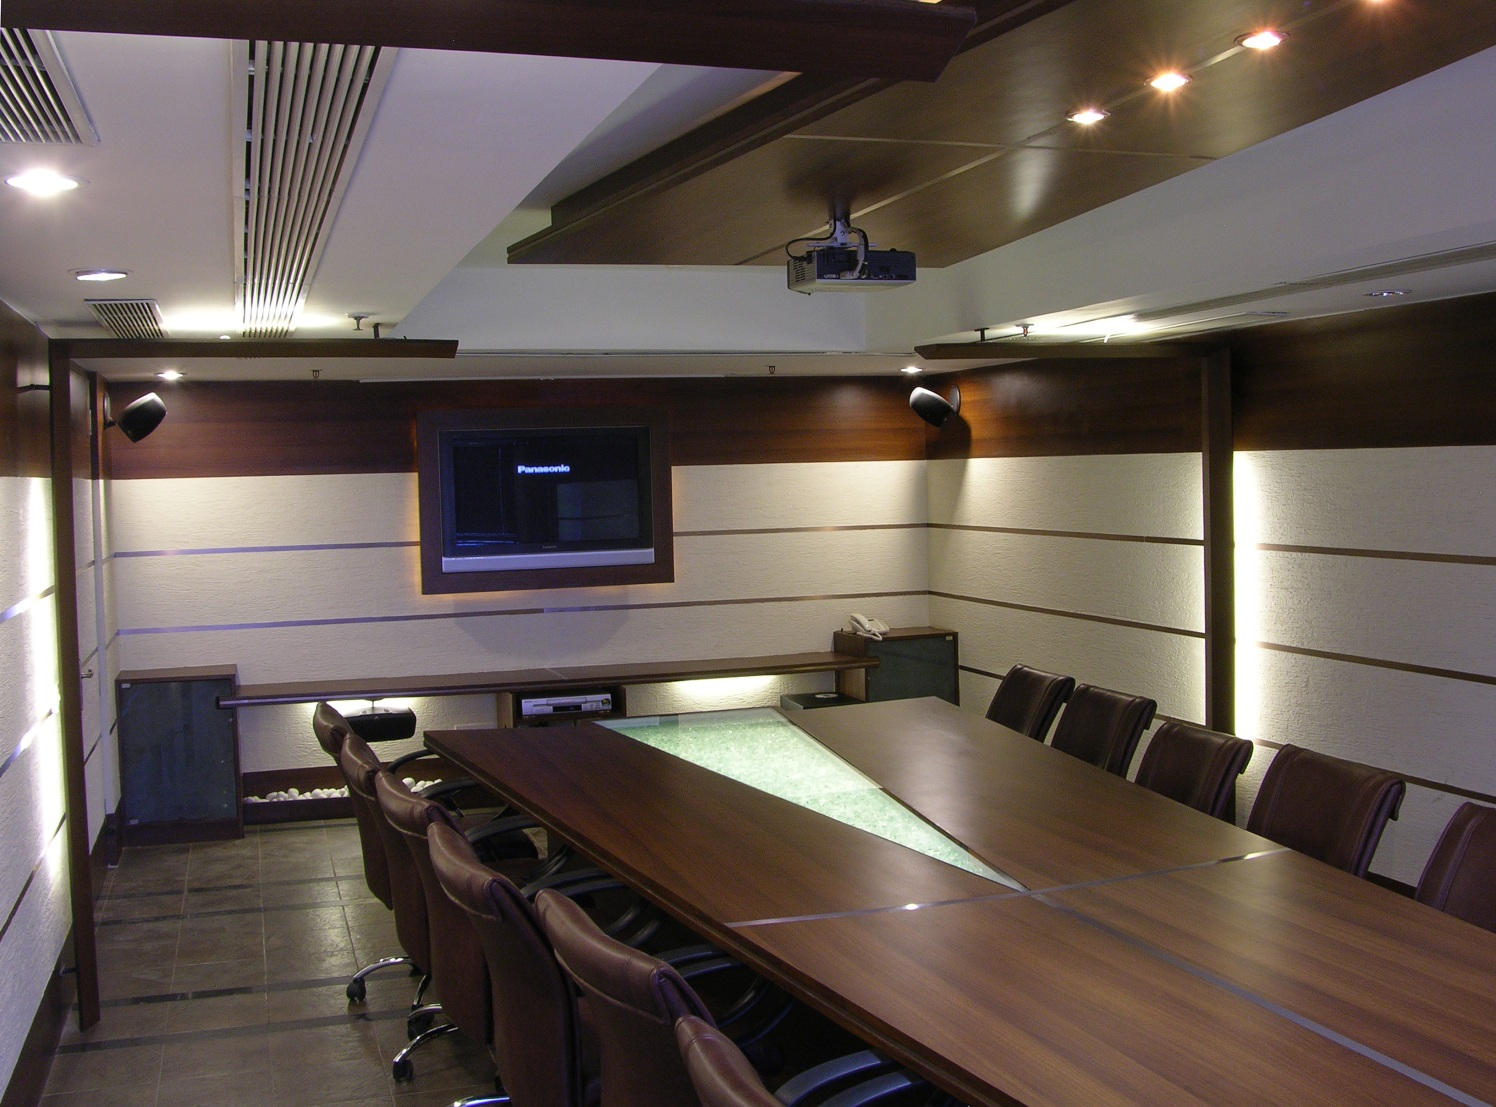 Formal Contemporary Meeting Room by Vijay Kapur Designs Modern | Interior Design Photos & Ideas